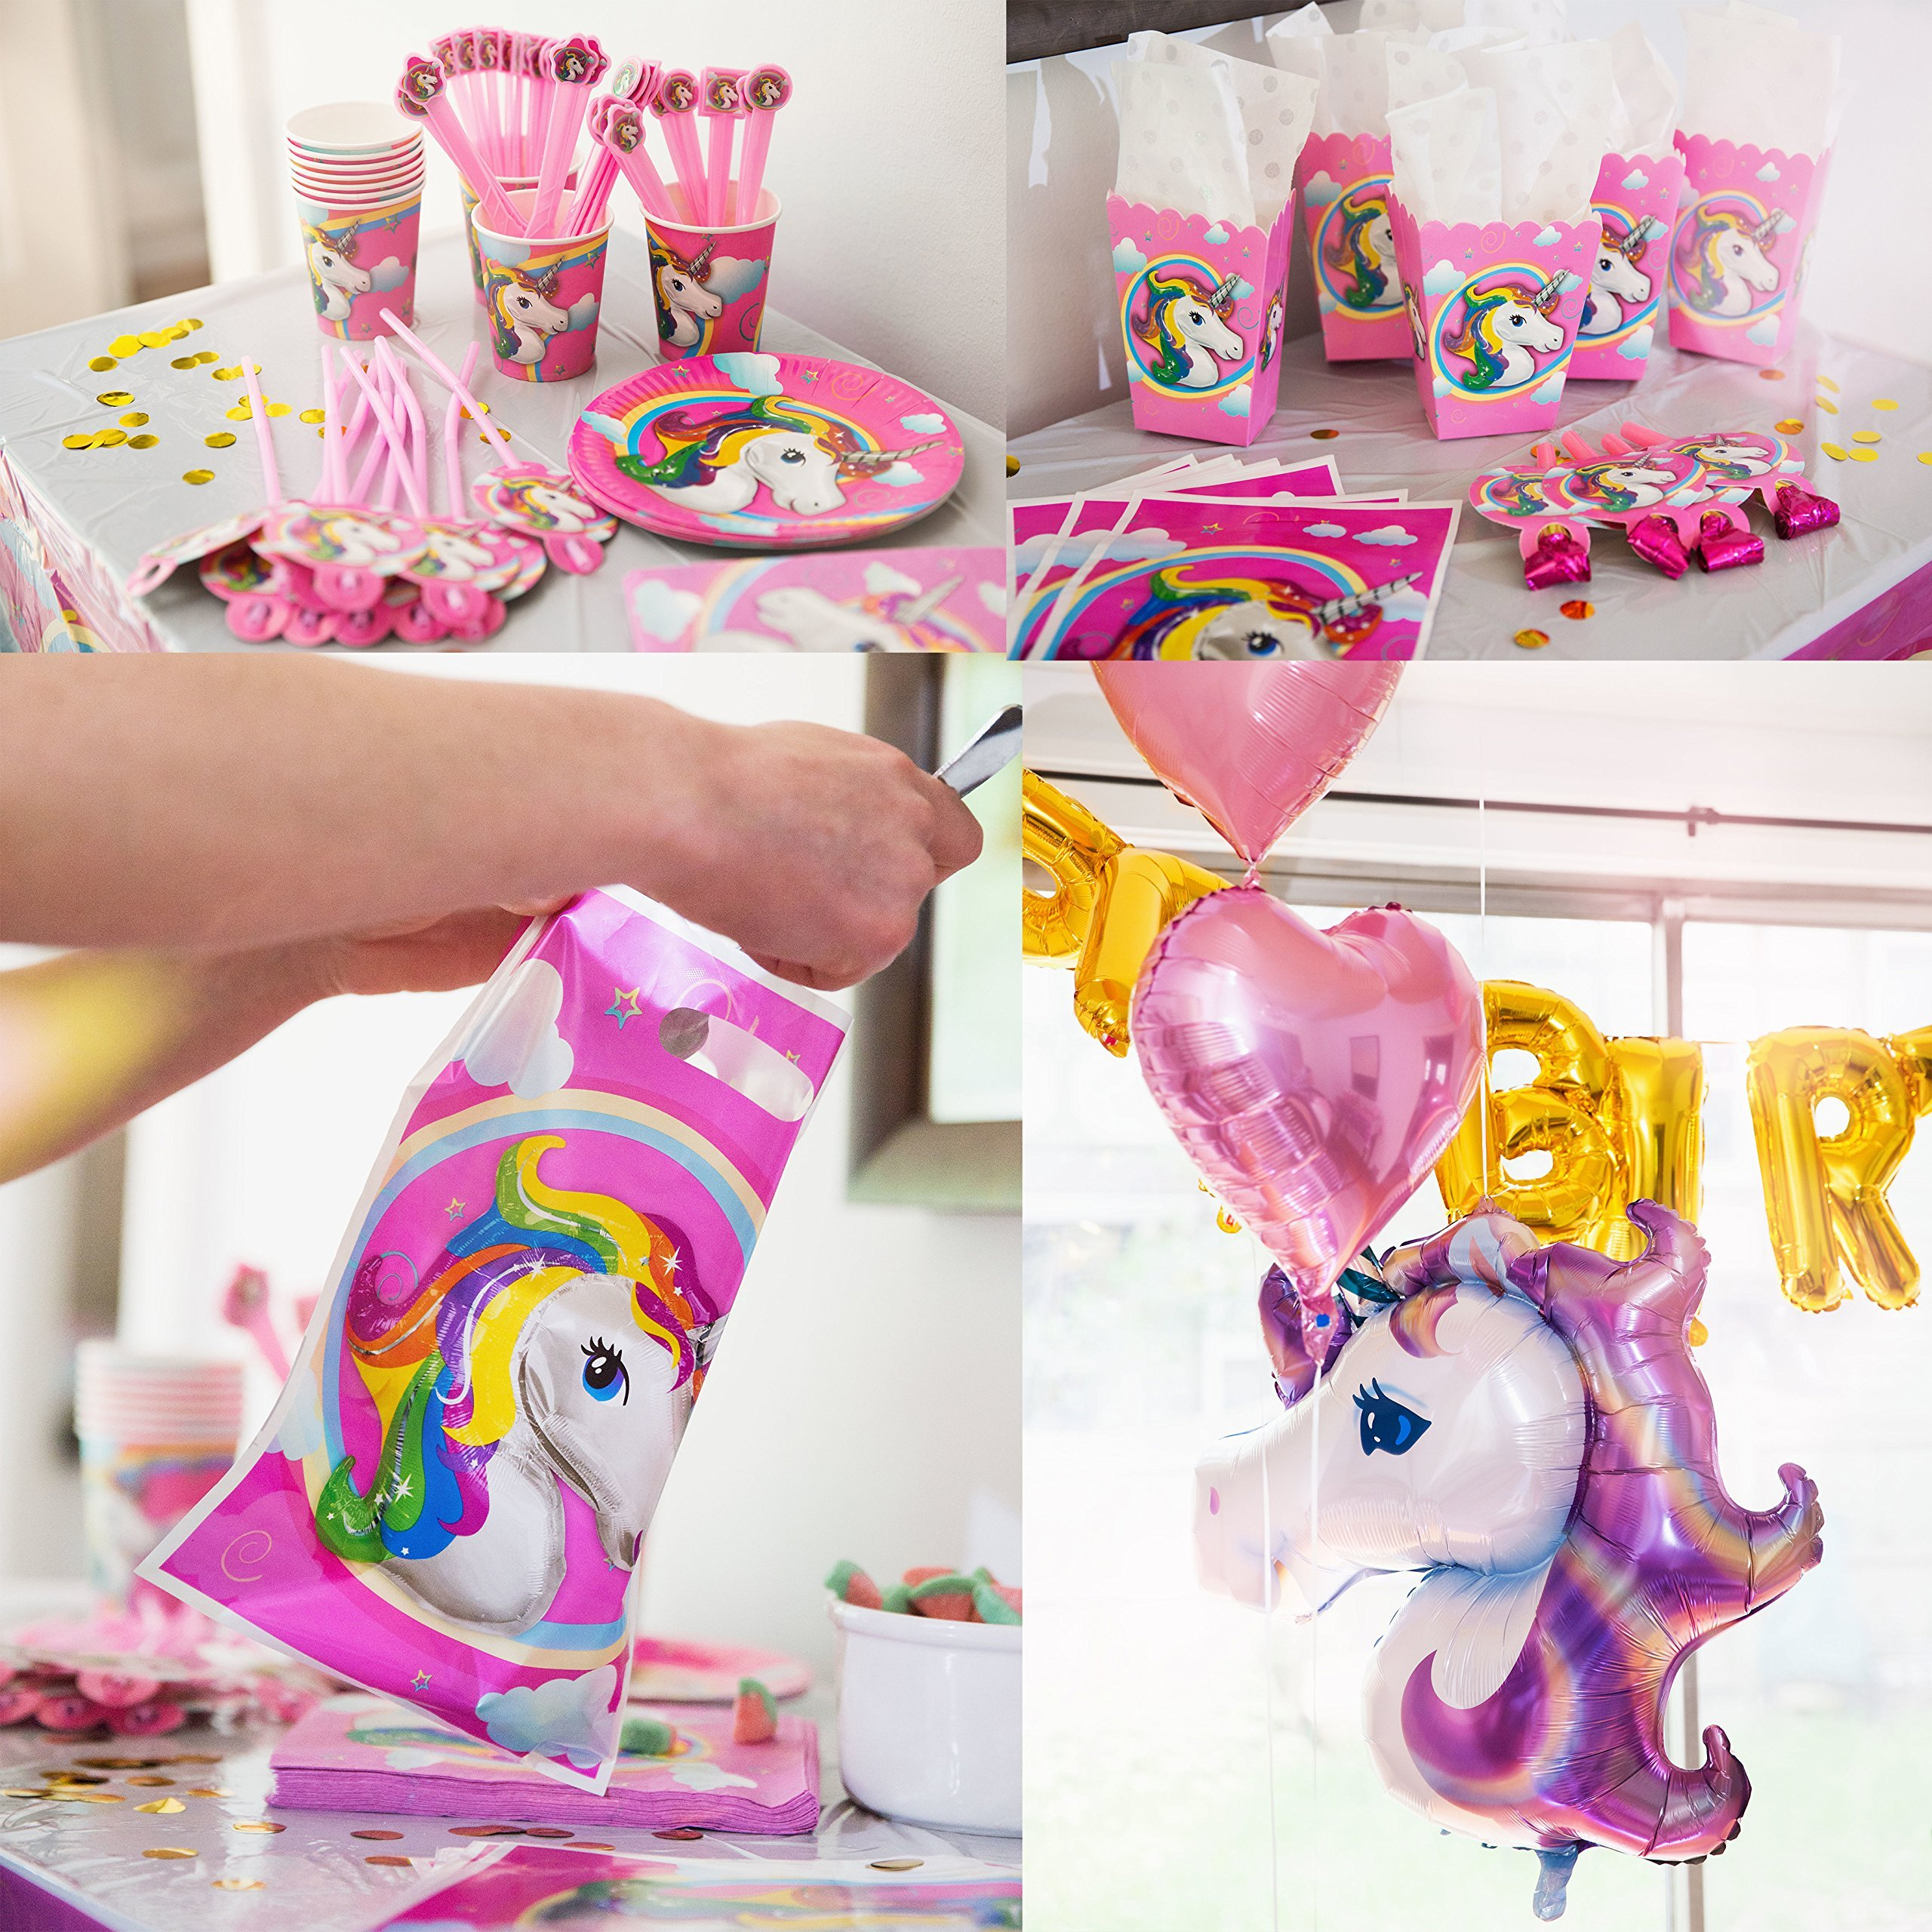 180+ PCS Complete Unicorn Party Supplies & Decorations - Glittery Unicorn Headband | Disposable Tableware Set | 30 Magical Balloons | 24 Pc Unicorn Cupcake Wrappers & Toppers | Party Favors by FETTI FETTI (Image #7)